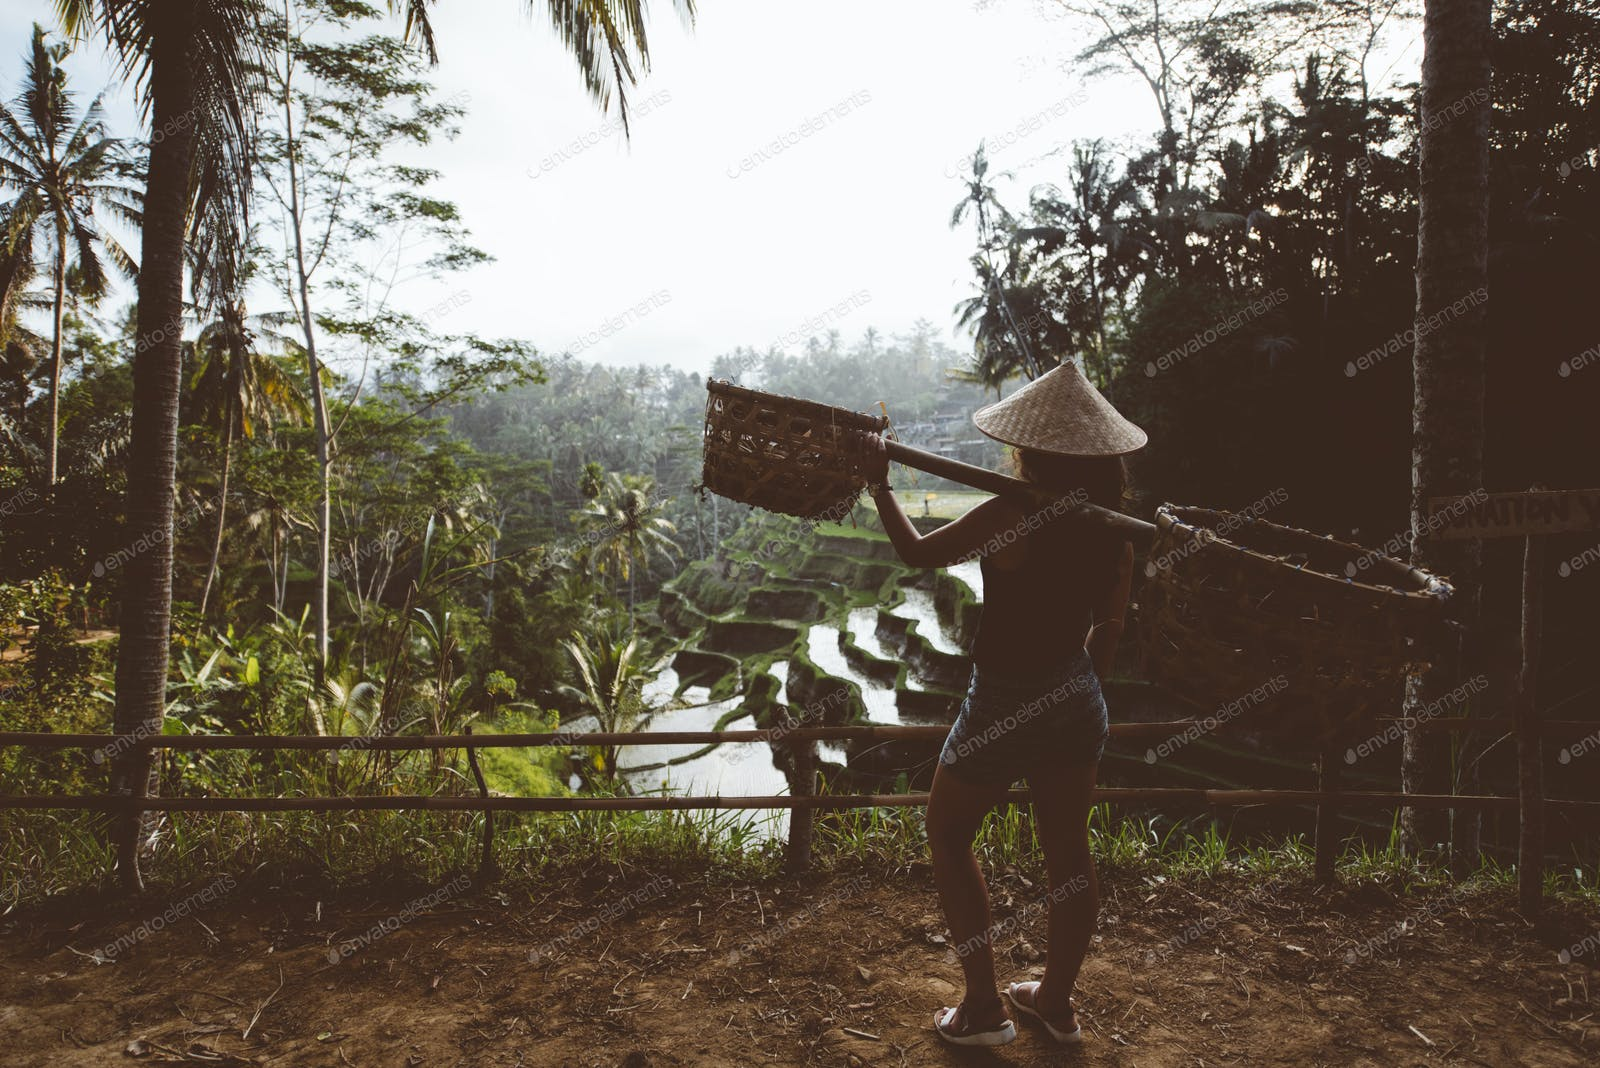 Agriculture Woman Carrying Tools On Rice Terraces In Ubud